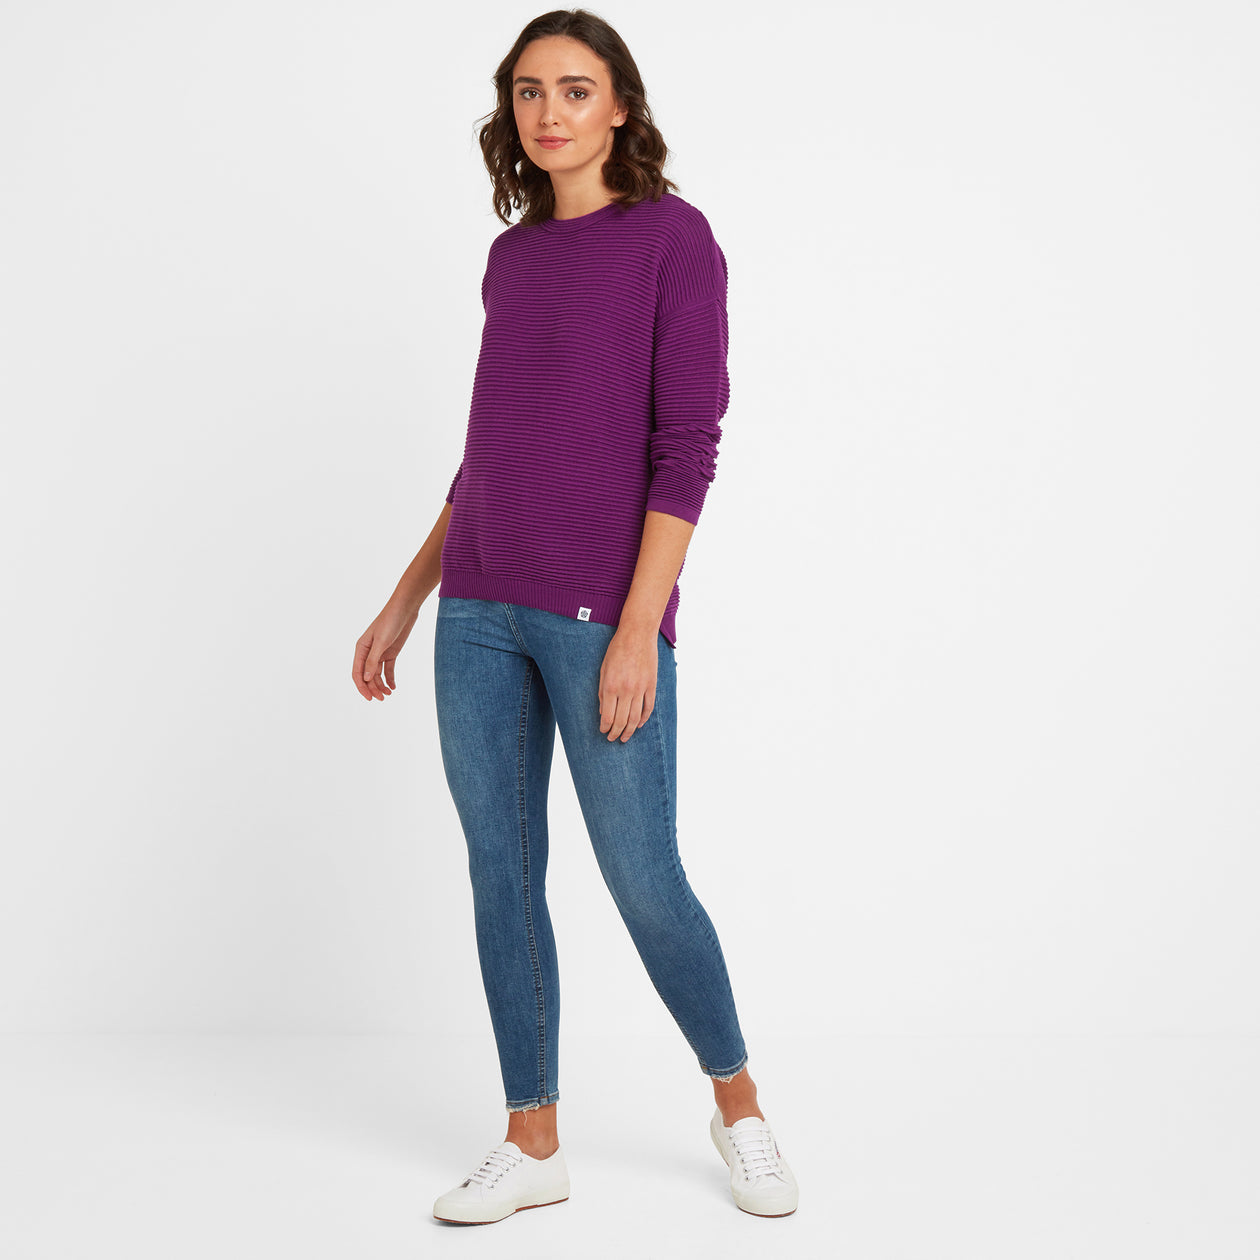 Joyce Womens Ripple Jumper - Mulberry image 4